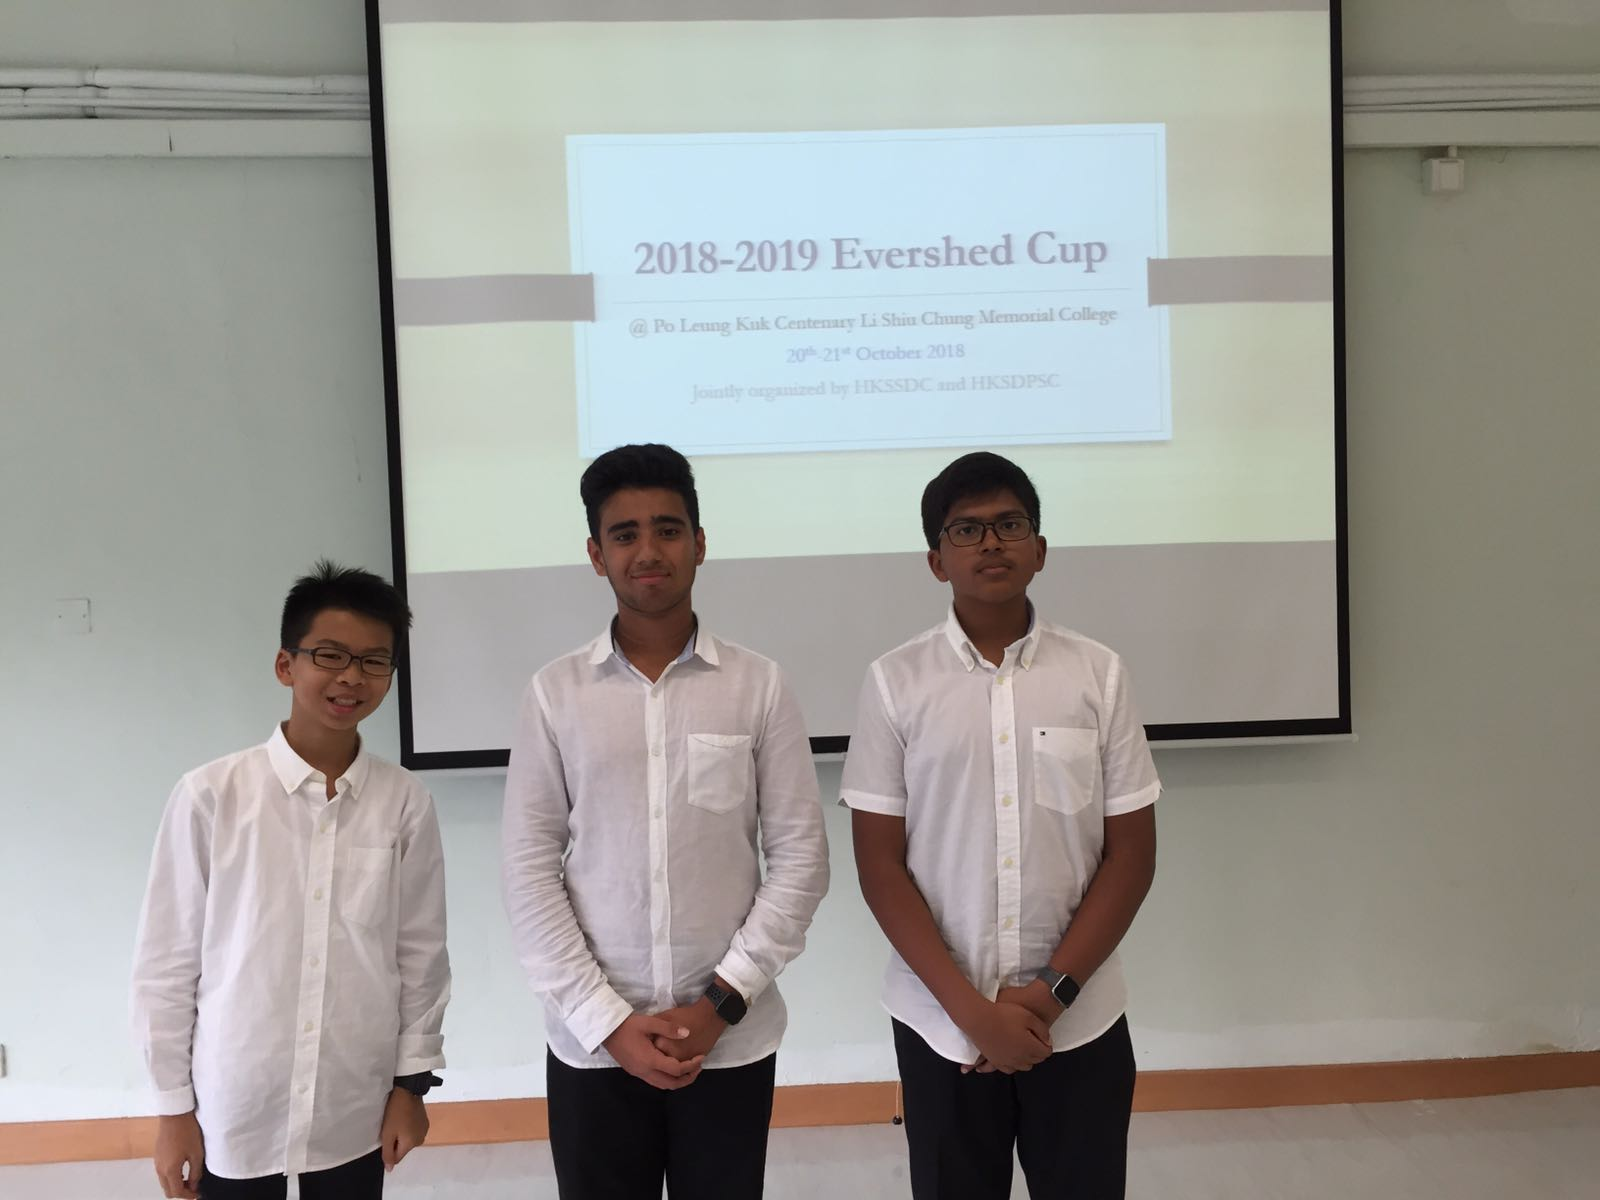 From left to right: Lucas Li, Mikhail Lulla, Tanush Agarwal    Not pictured: Audrey Lau, Shriya Syrinivasan